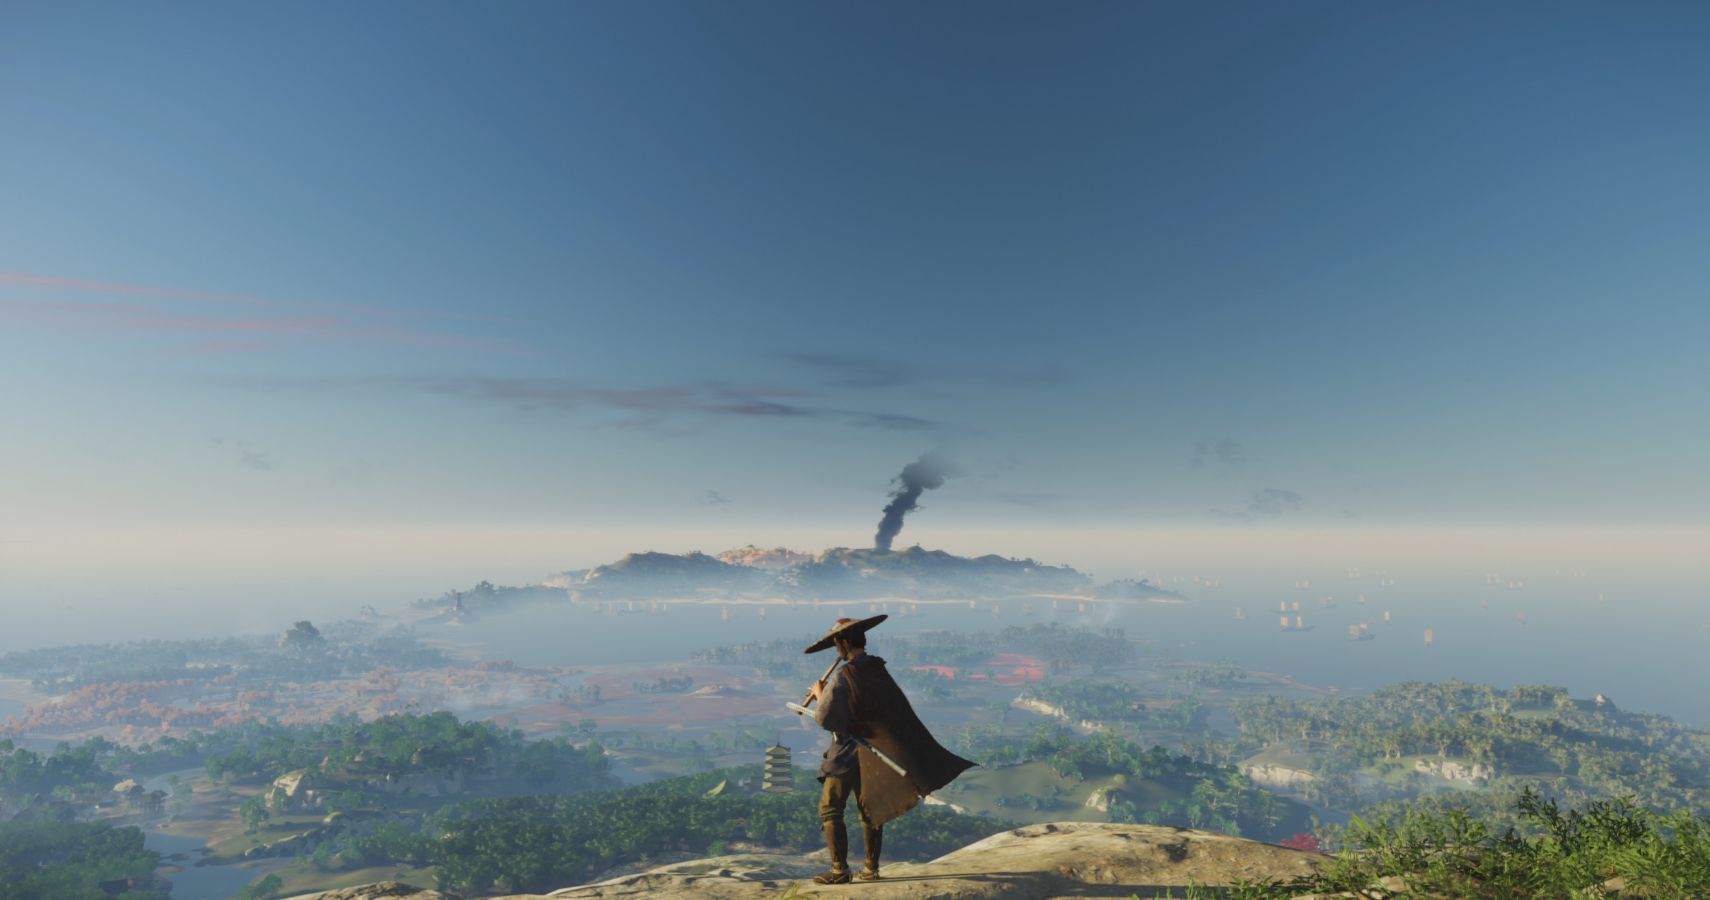 TV Show Inspired By Ghost Of Tsushima Comes Out Next Week